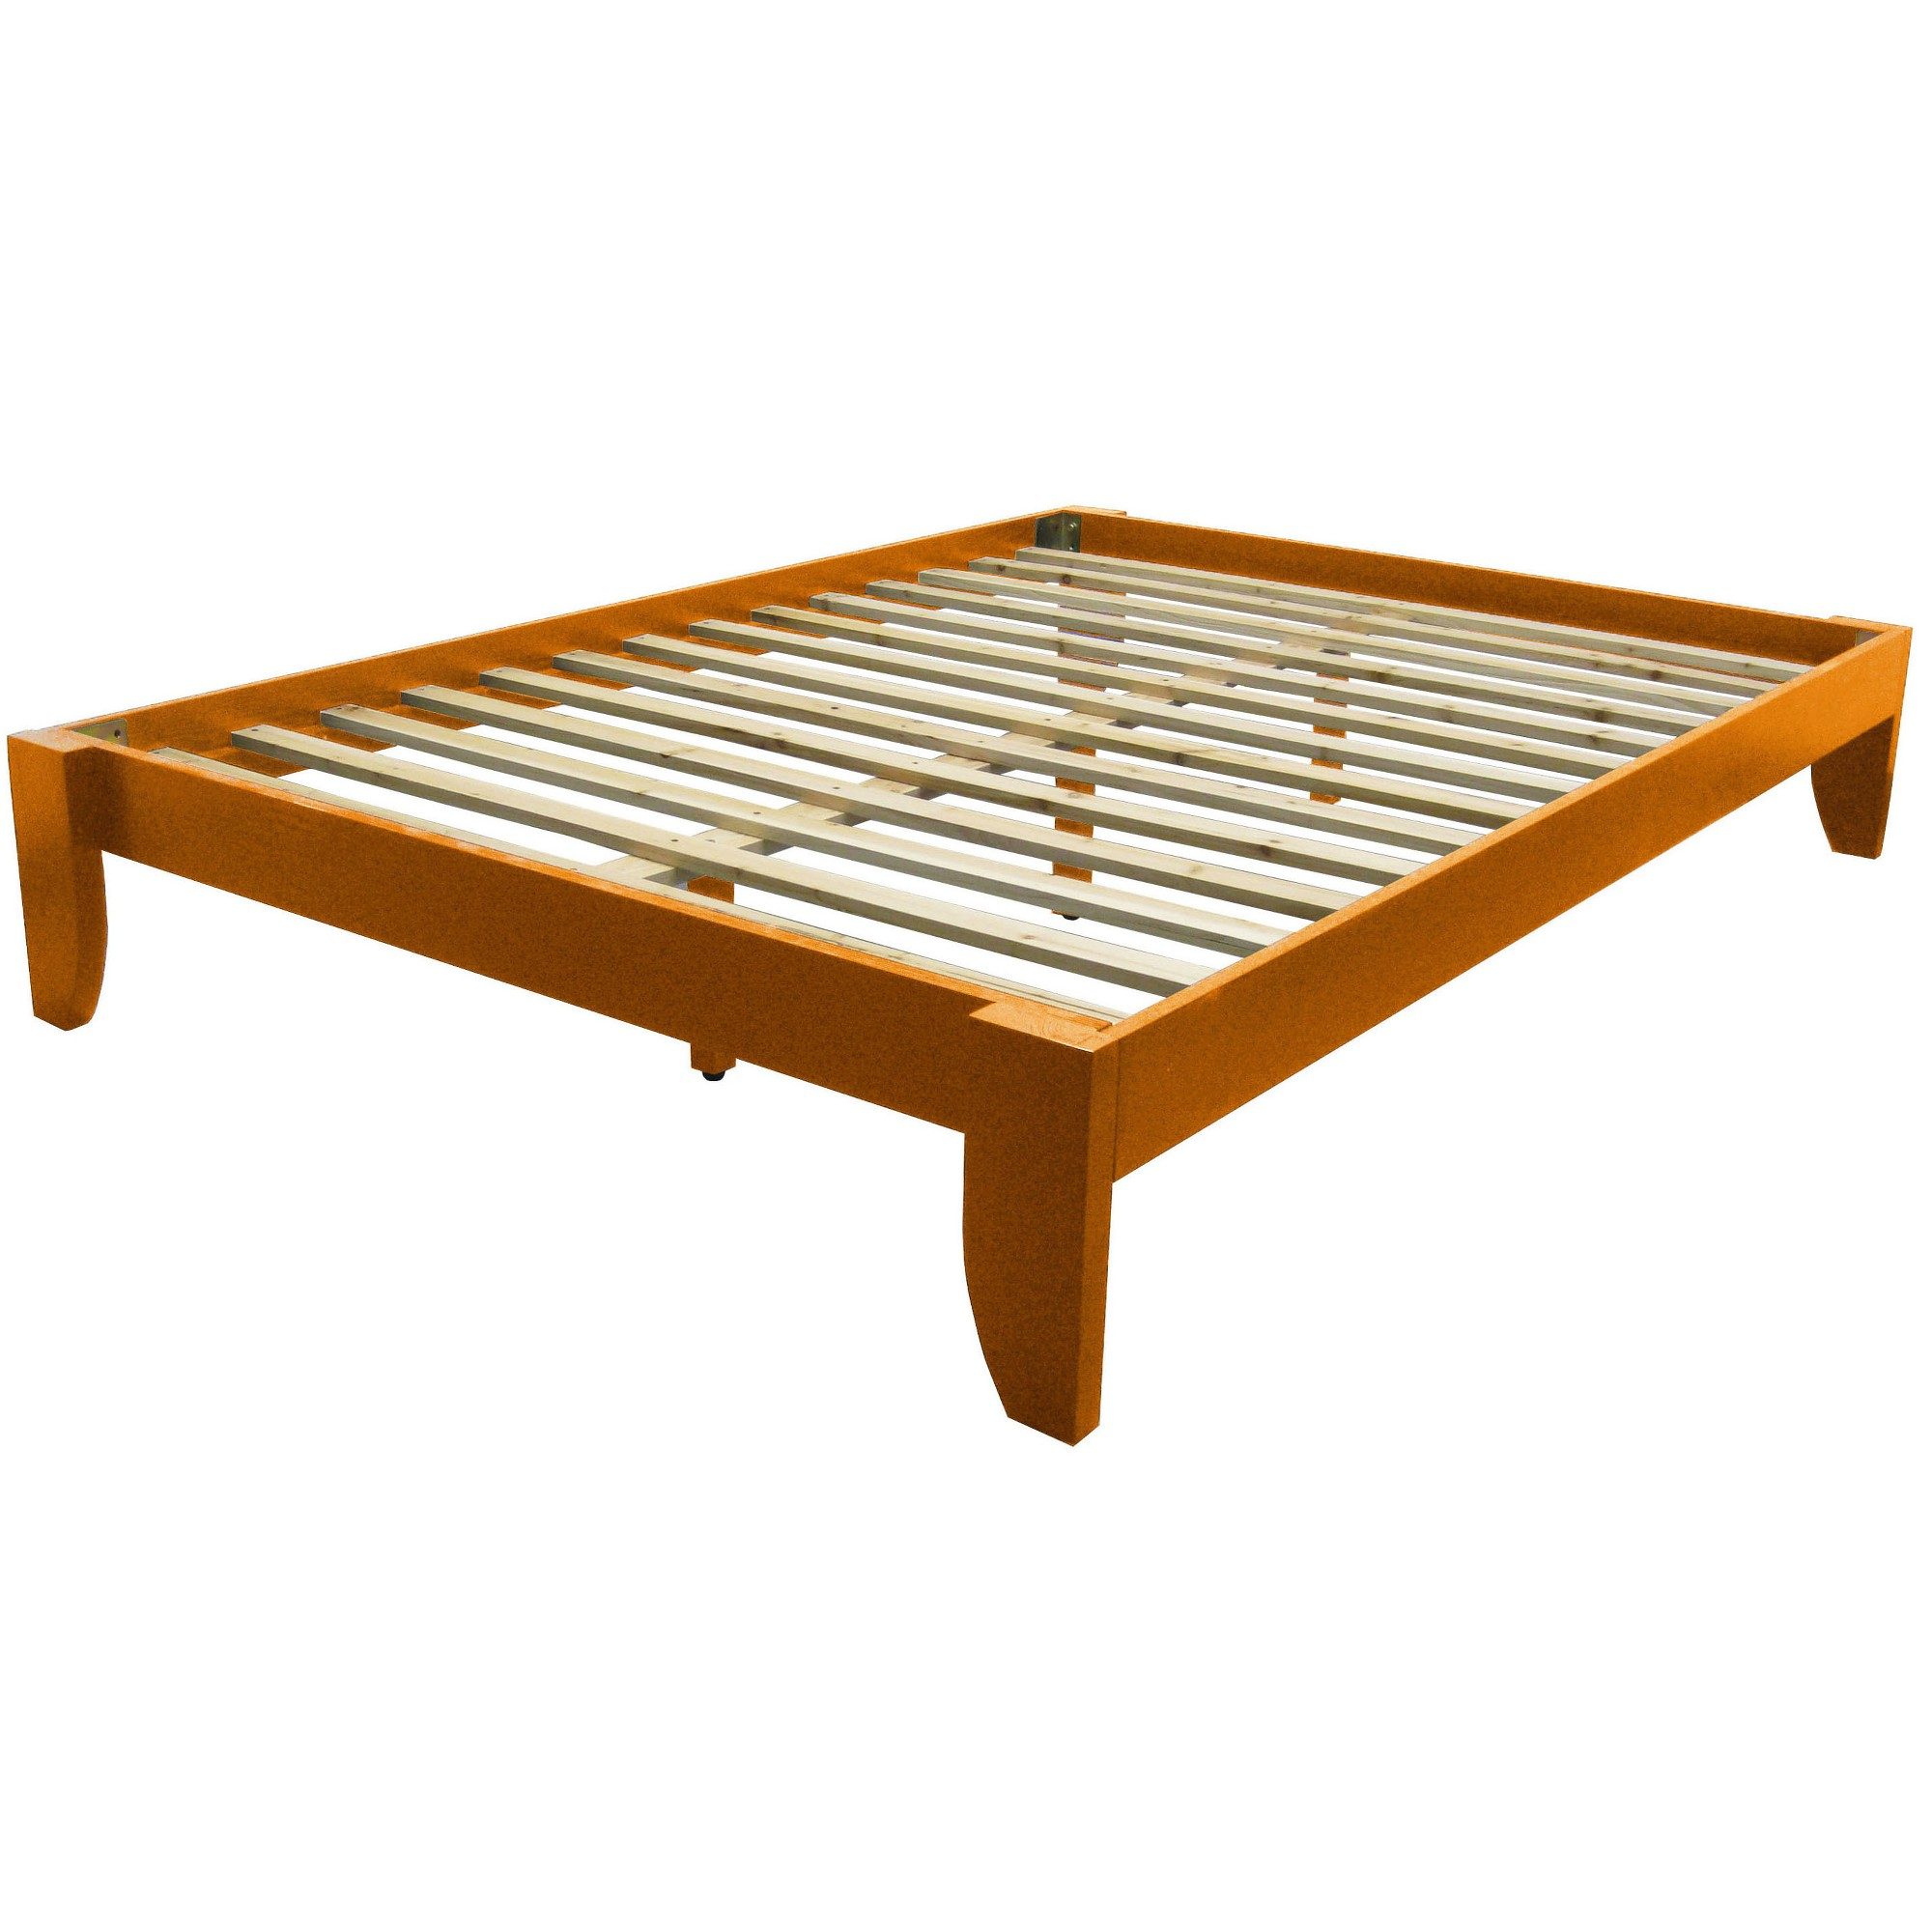 dan frame have woodworking s log of i things made some for bed cedar the img queen size customers